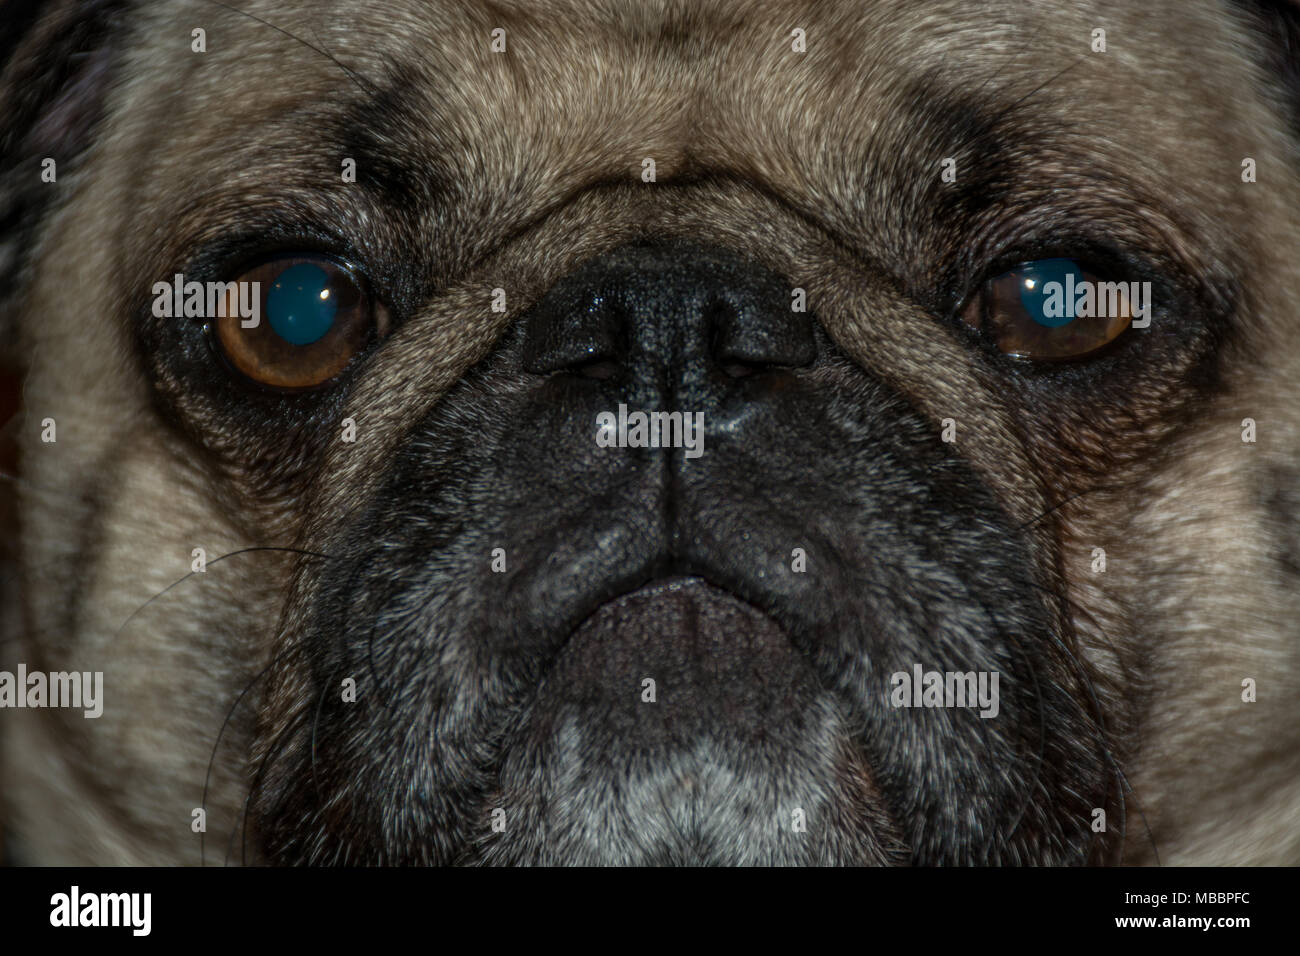 The Deep Blue Look of  a Pug - Stock Image